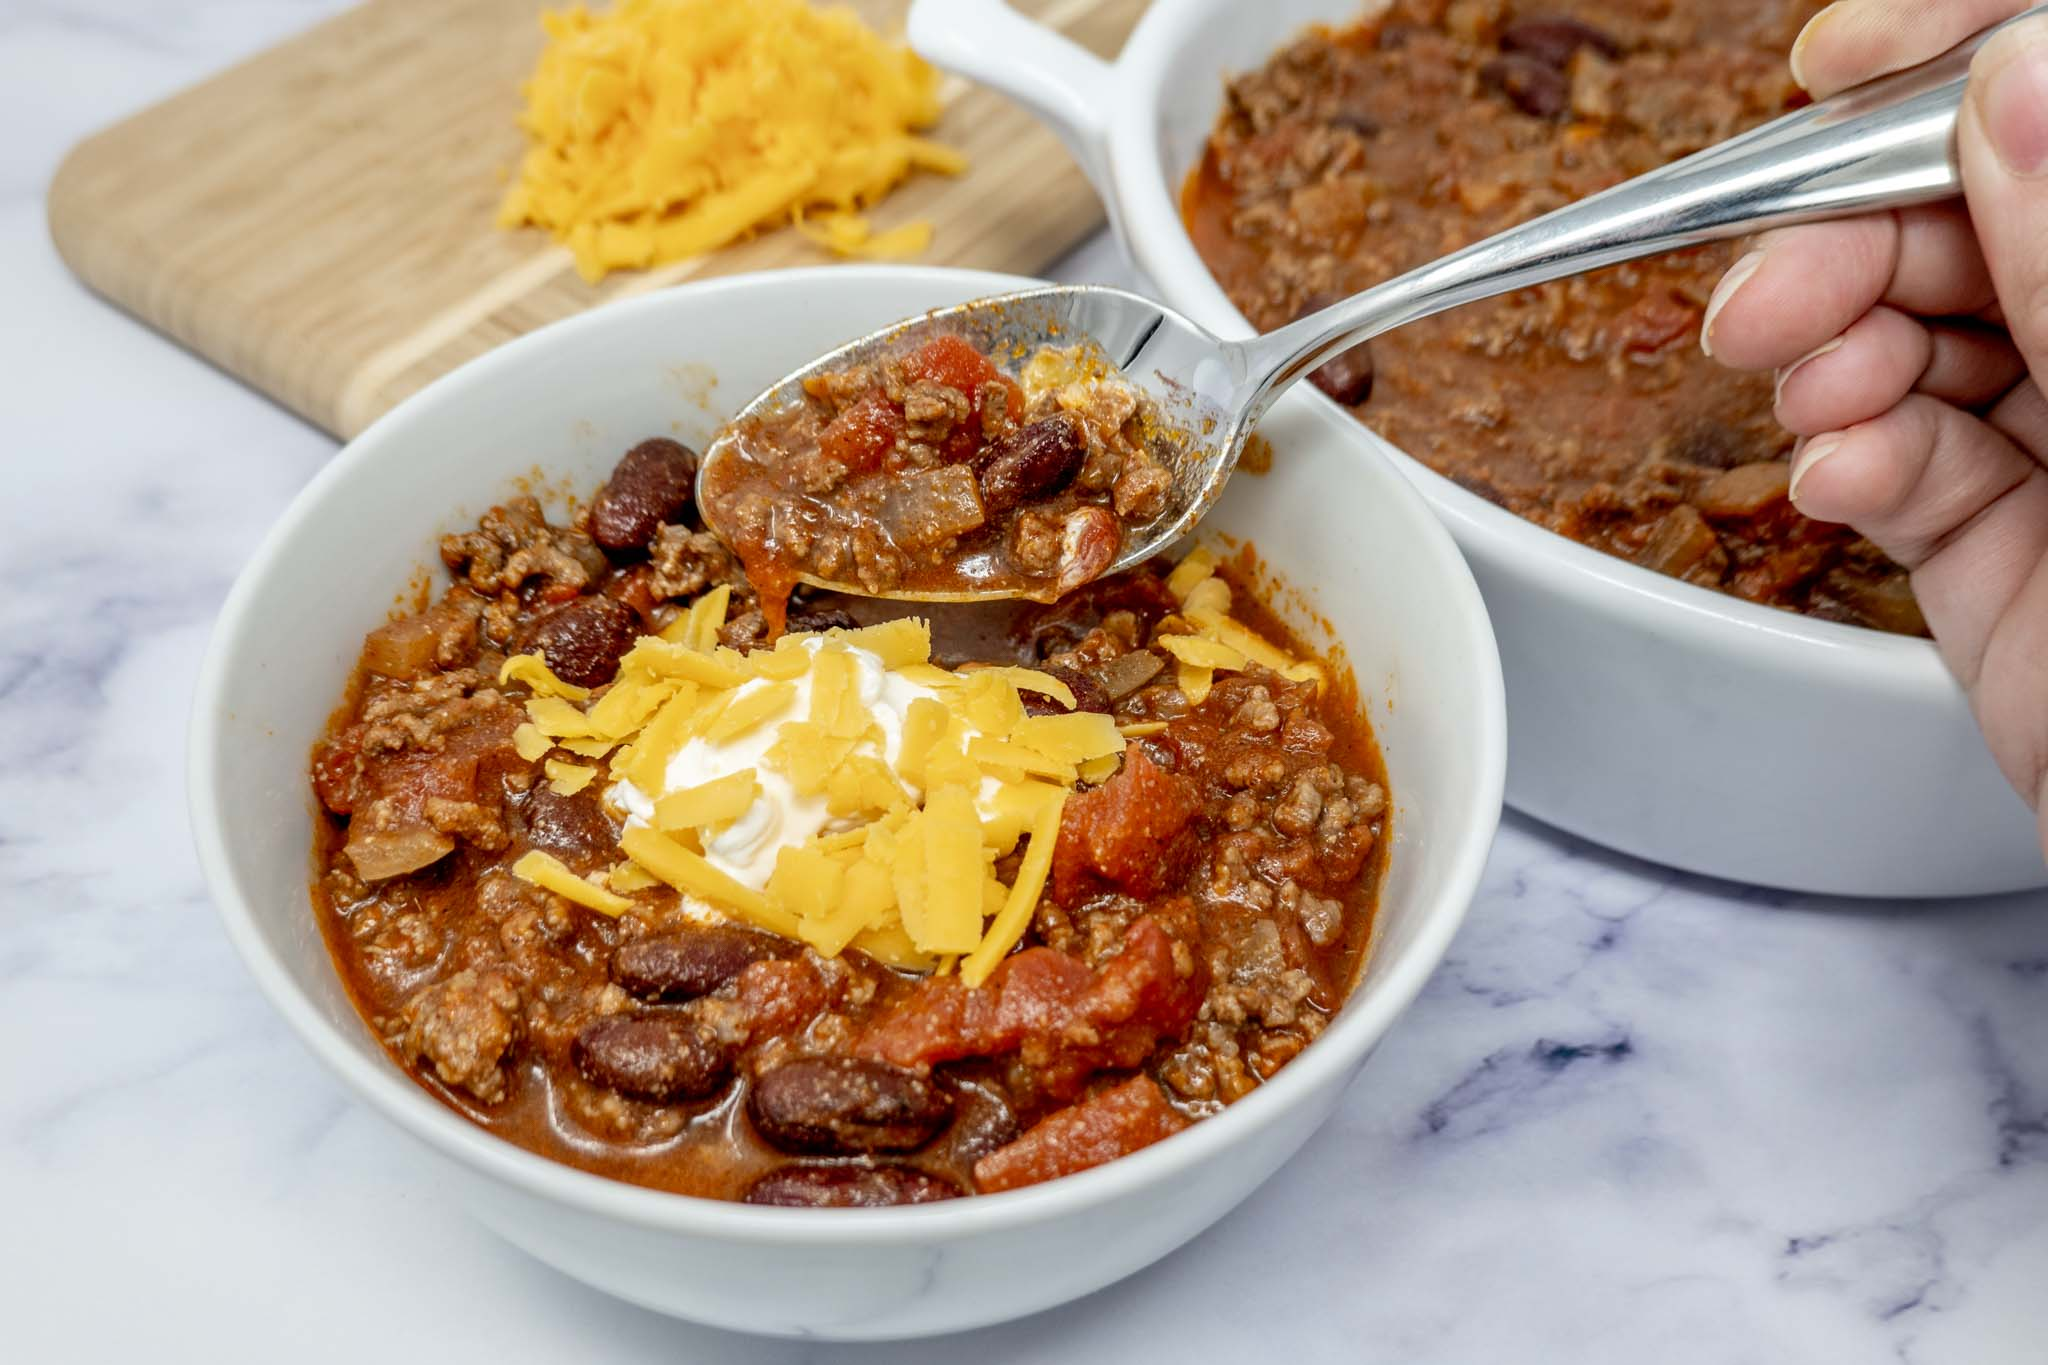 Spoon in a bowl of homemade beef chili